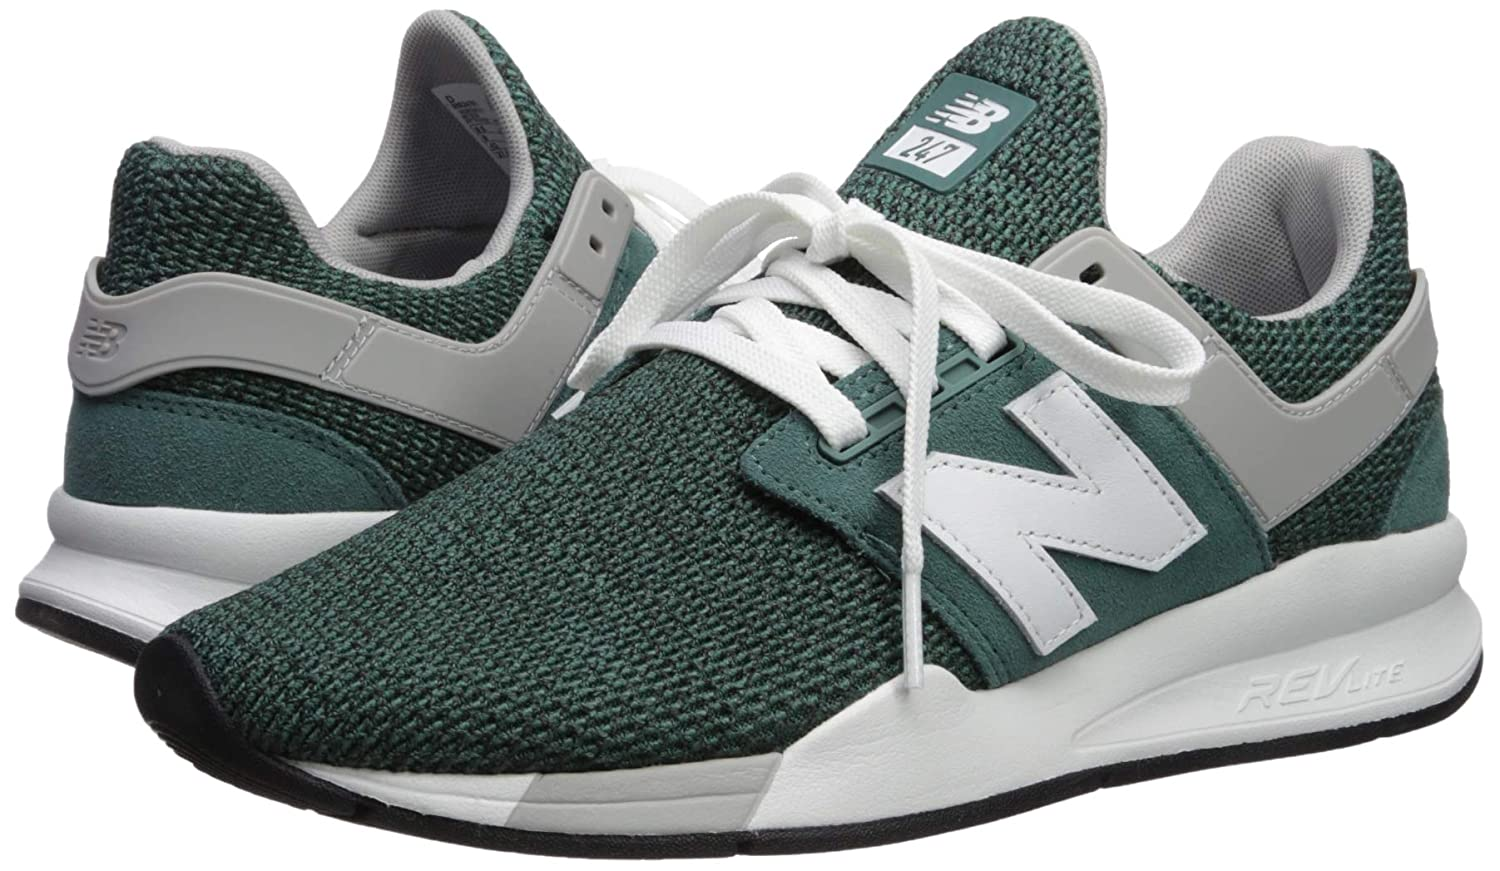 New Balance Men's 247v2 Deconstructed Trainers: Amazon.co.uk: Shoes ...